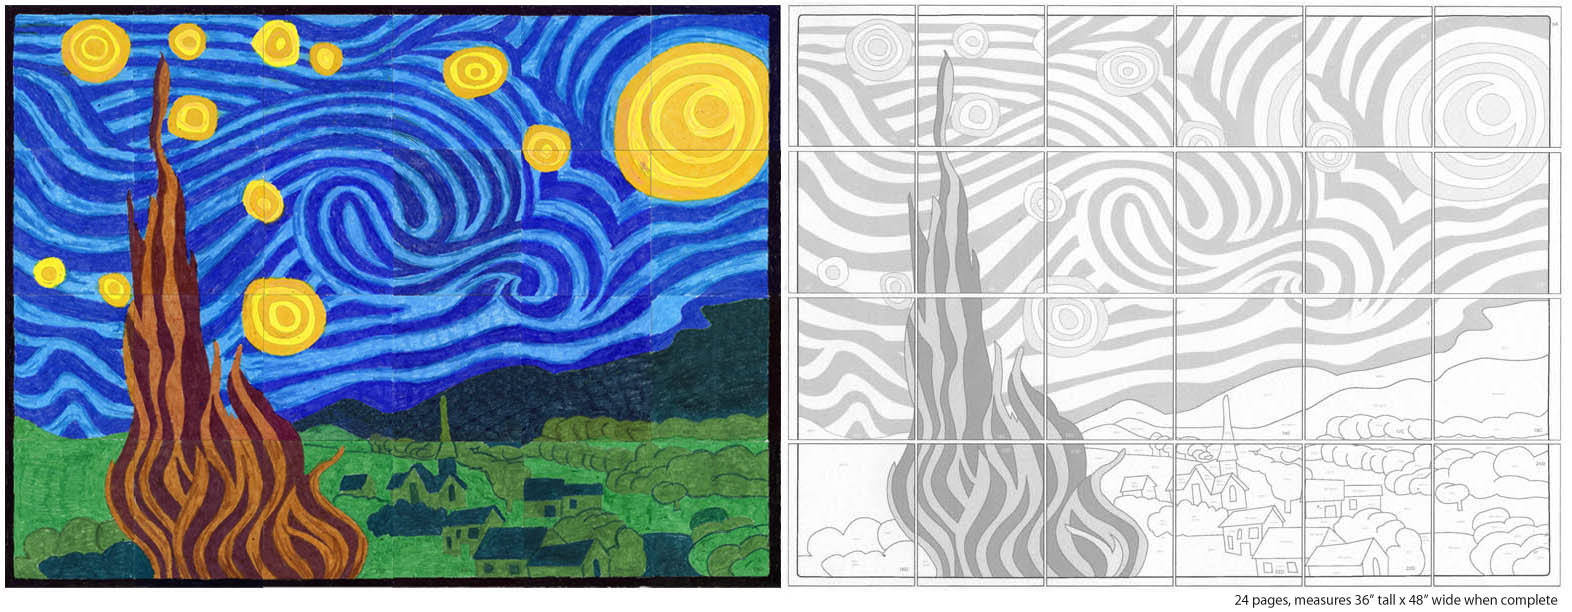 Starry night mural diagram art projects for kids for Mural van gogh